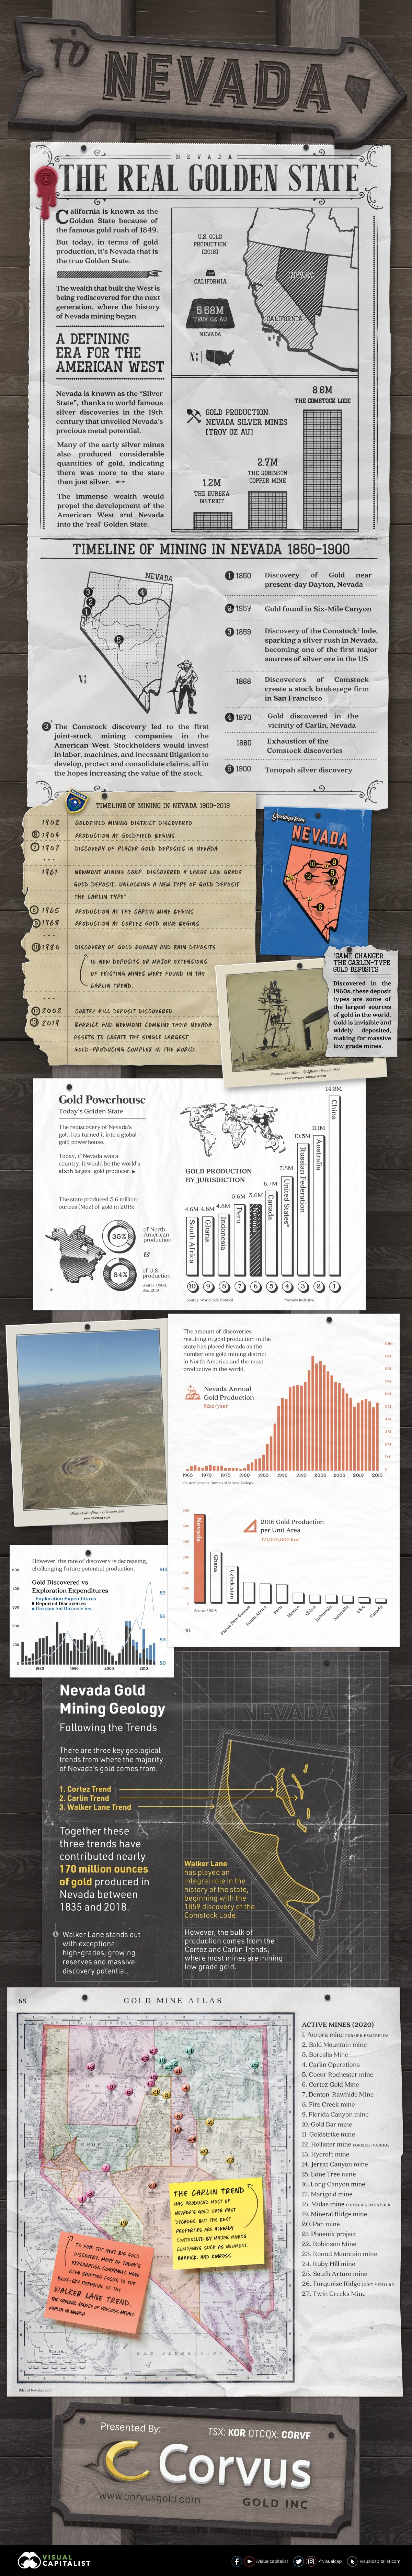 Nevada gold: The Real Golden State #infographic